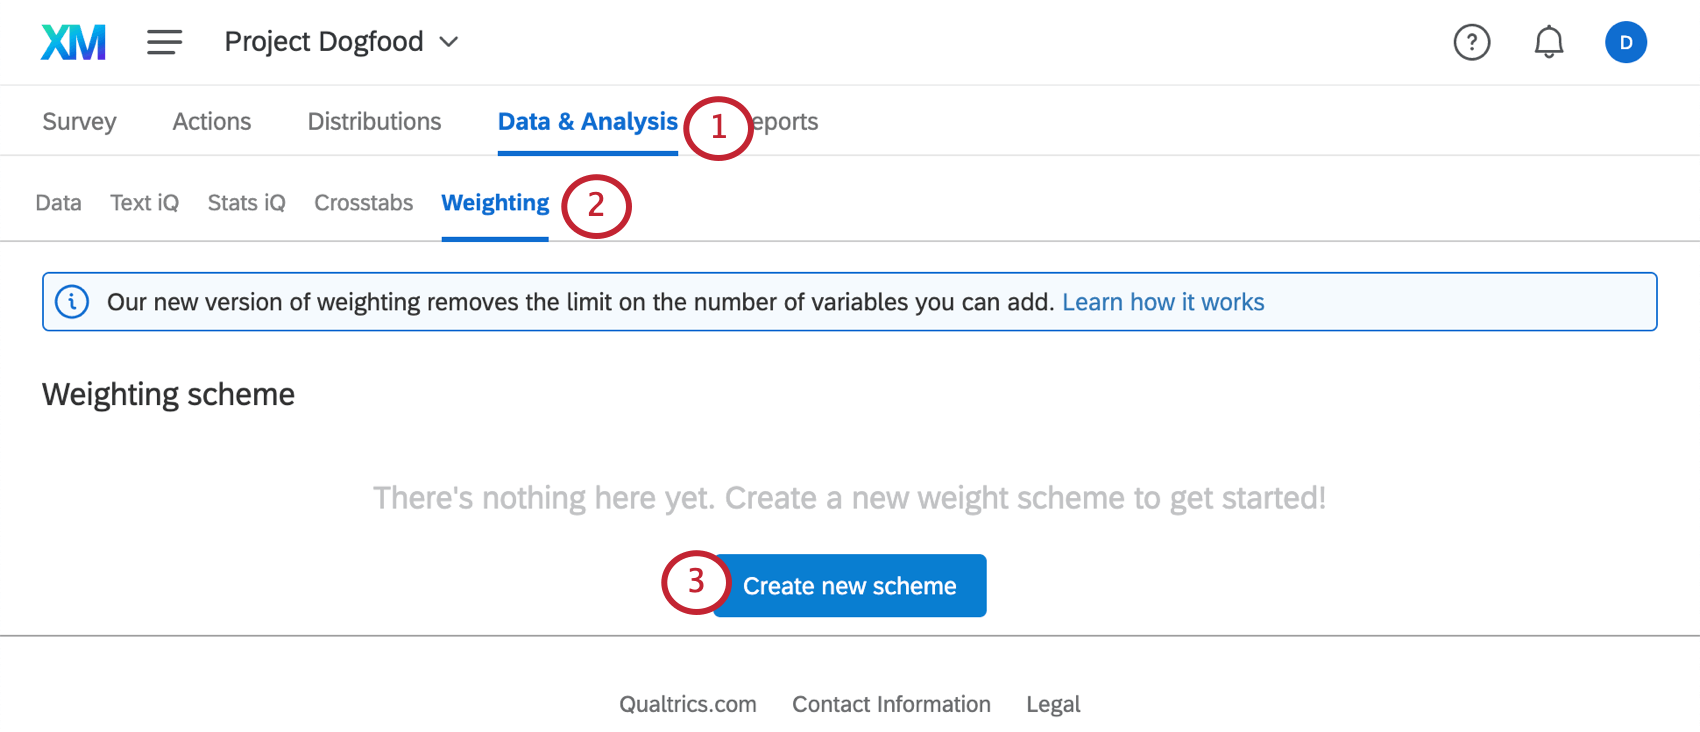 Picture of the weighting tab with the create new scheme button in the center